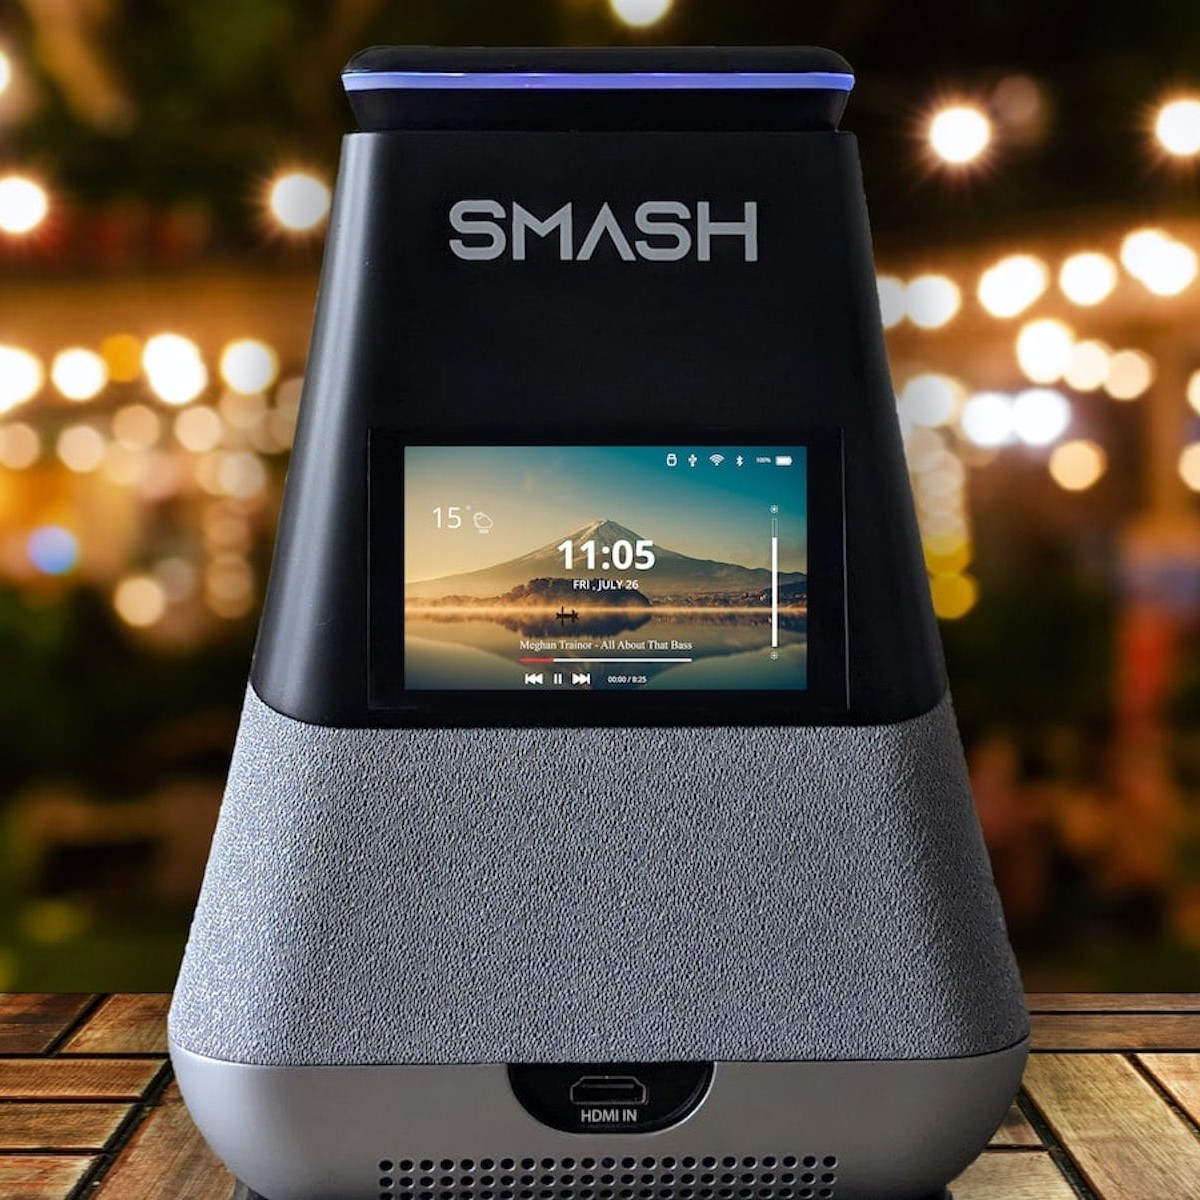 WooBloo introduces SMASH at CES 2021—a portable 300 lumens smart home projector